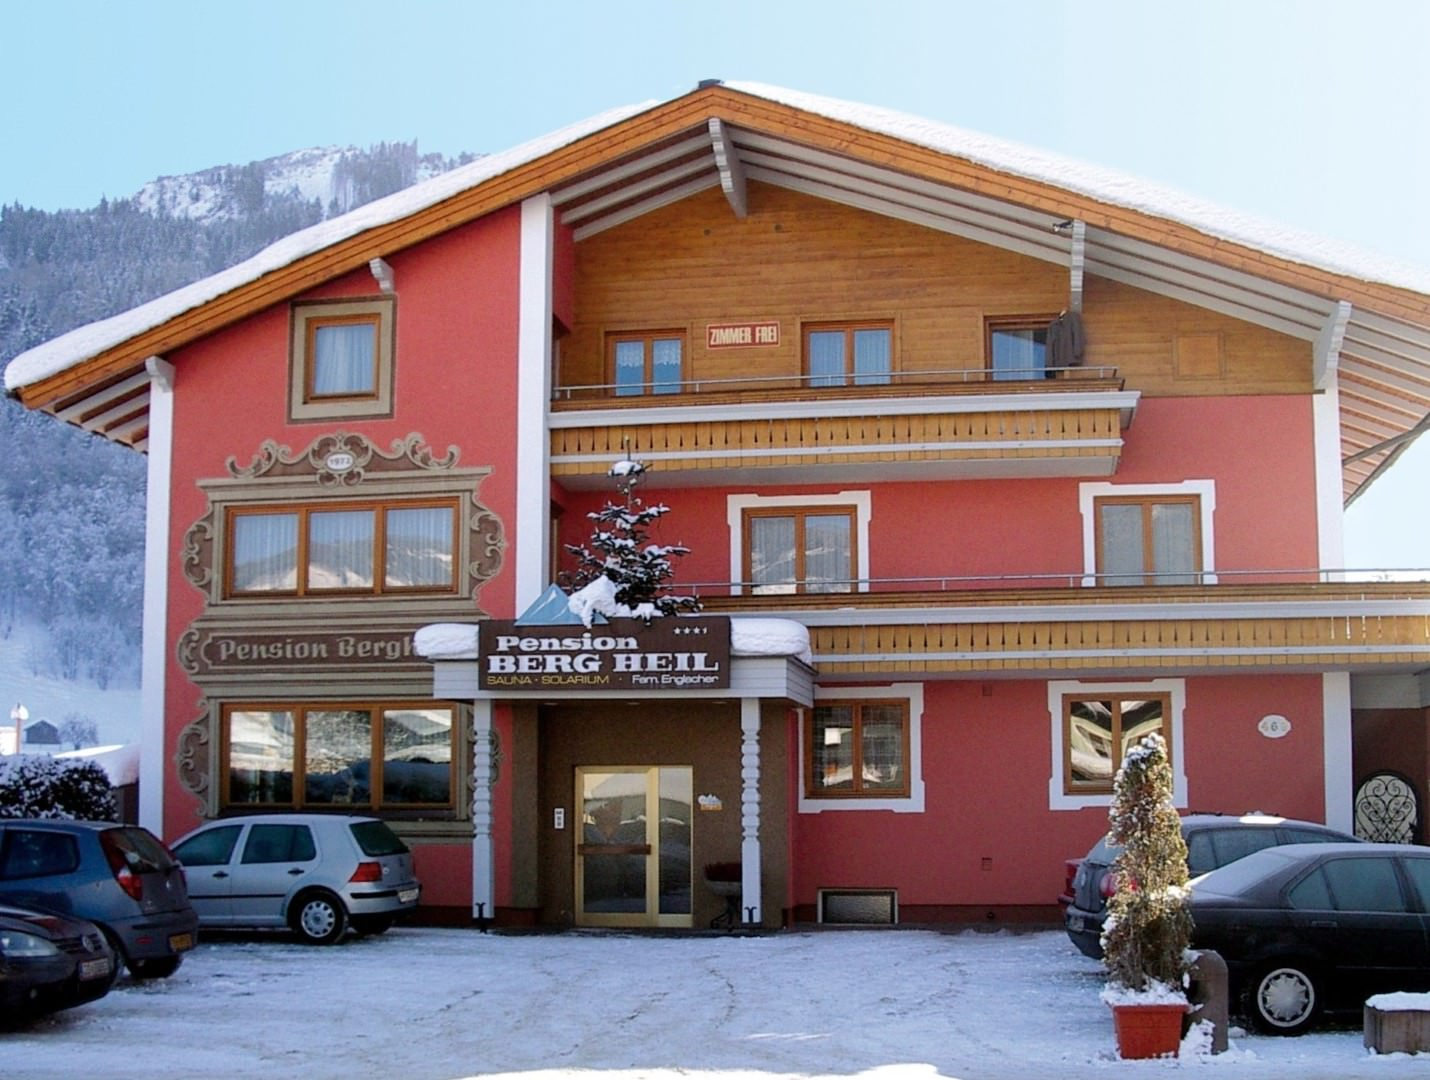 Pension Bergheil in Kaprun / Zell am See, Pension Bergheil / Österreich